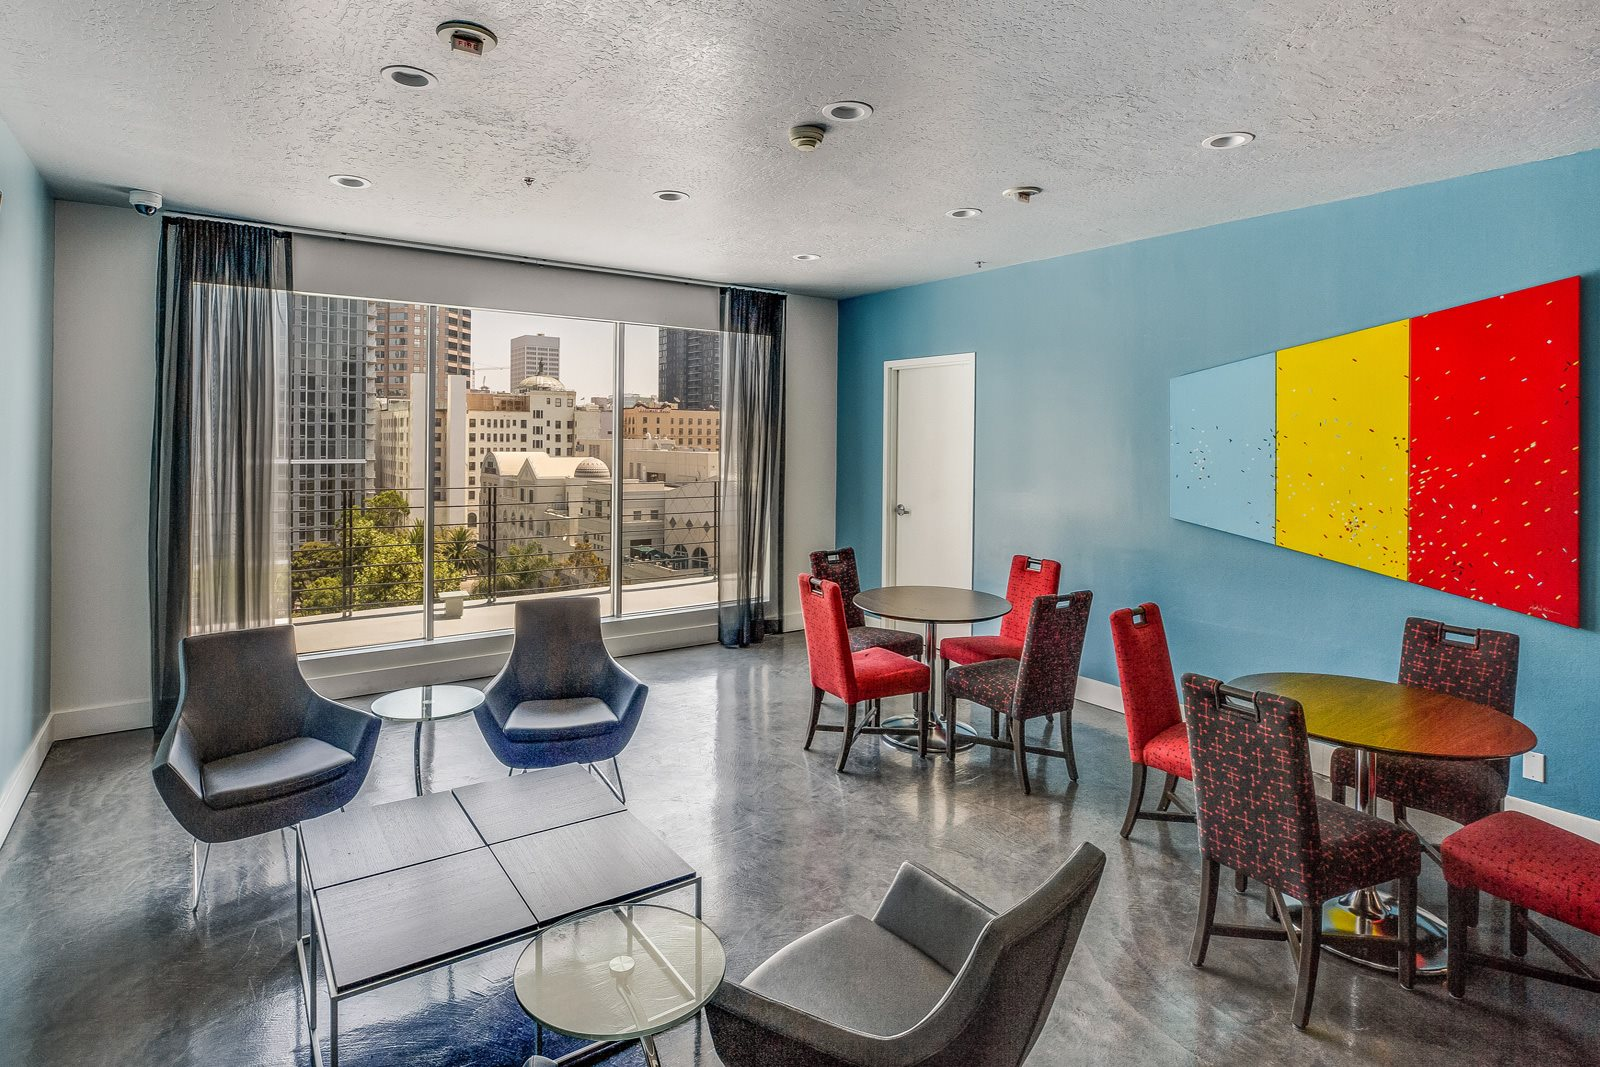 Sky Lounge with Views of Downtown LA at Renaissance Tower, 90015, CA